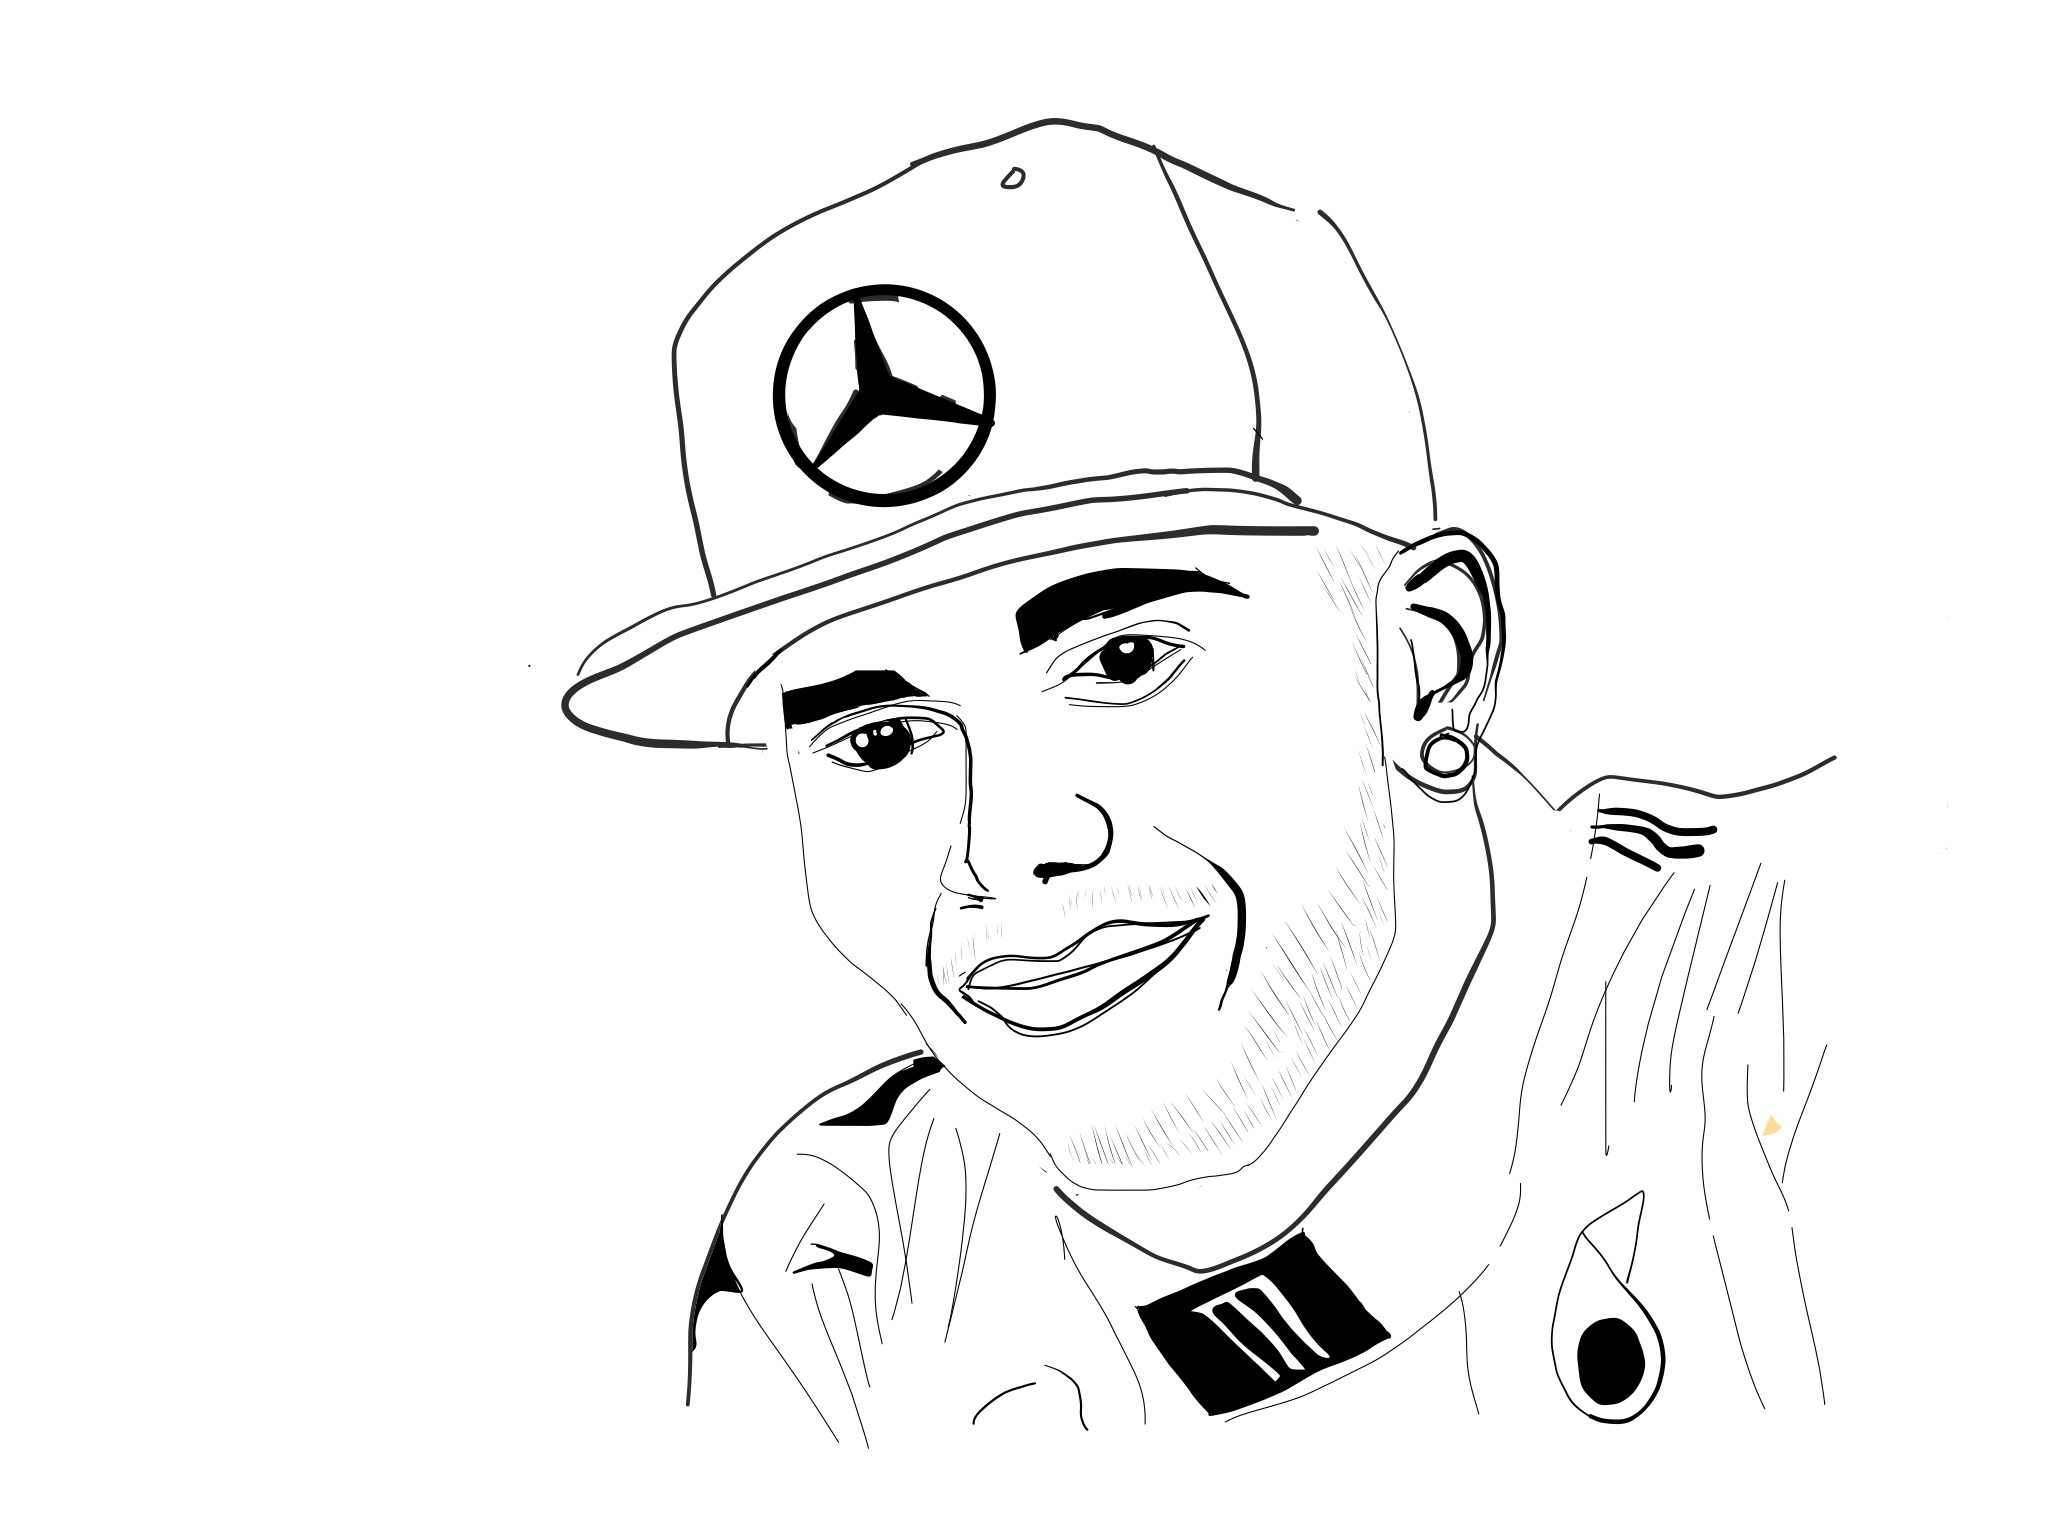 2048x1536 Lewis Hamilton, Human Beings Amp Innovation (They Are All Connected